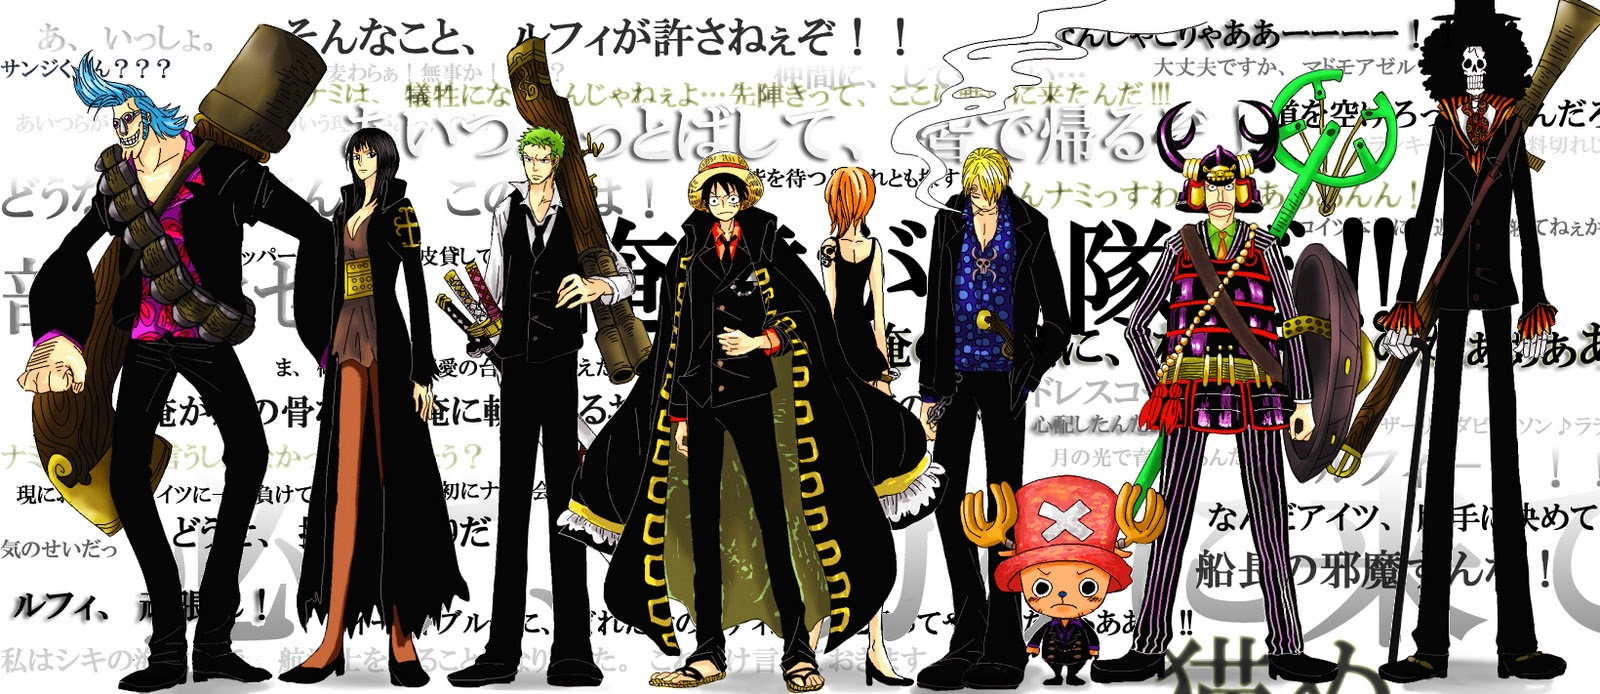 one piece strong world images one_piece___strong_world_ hd